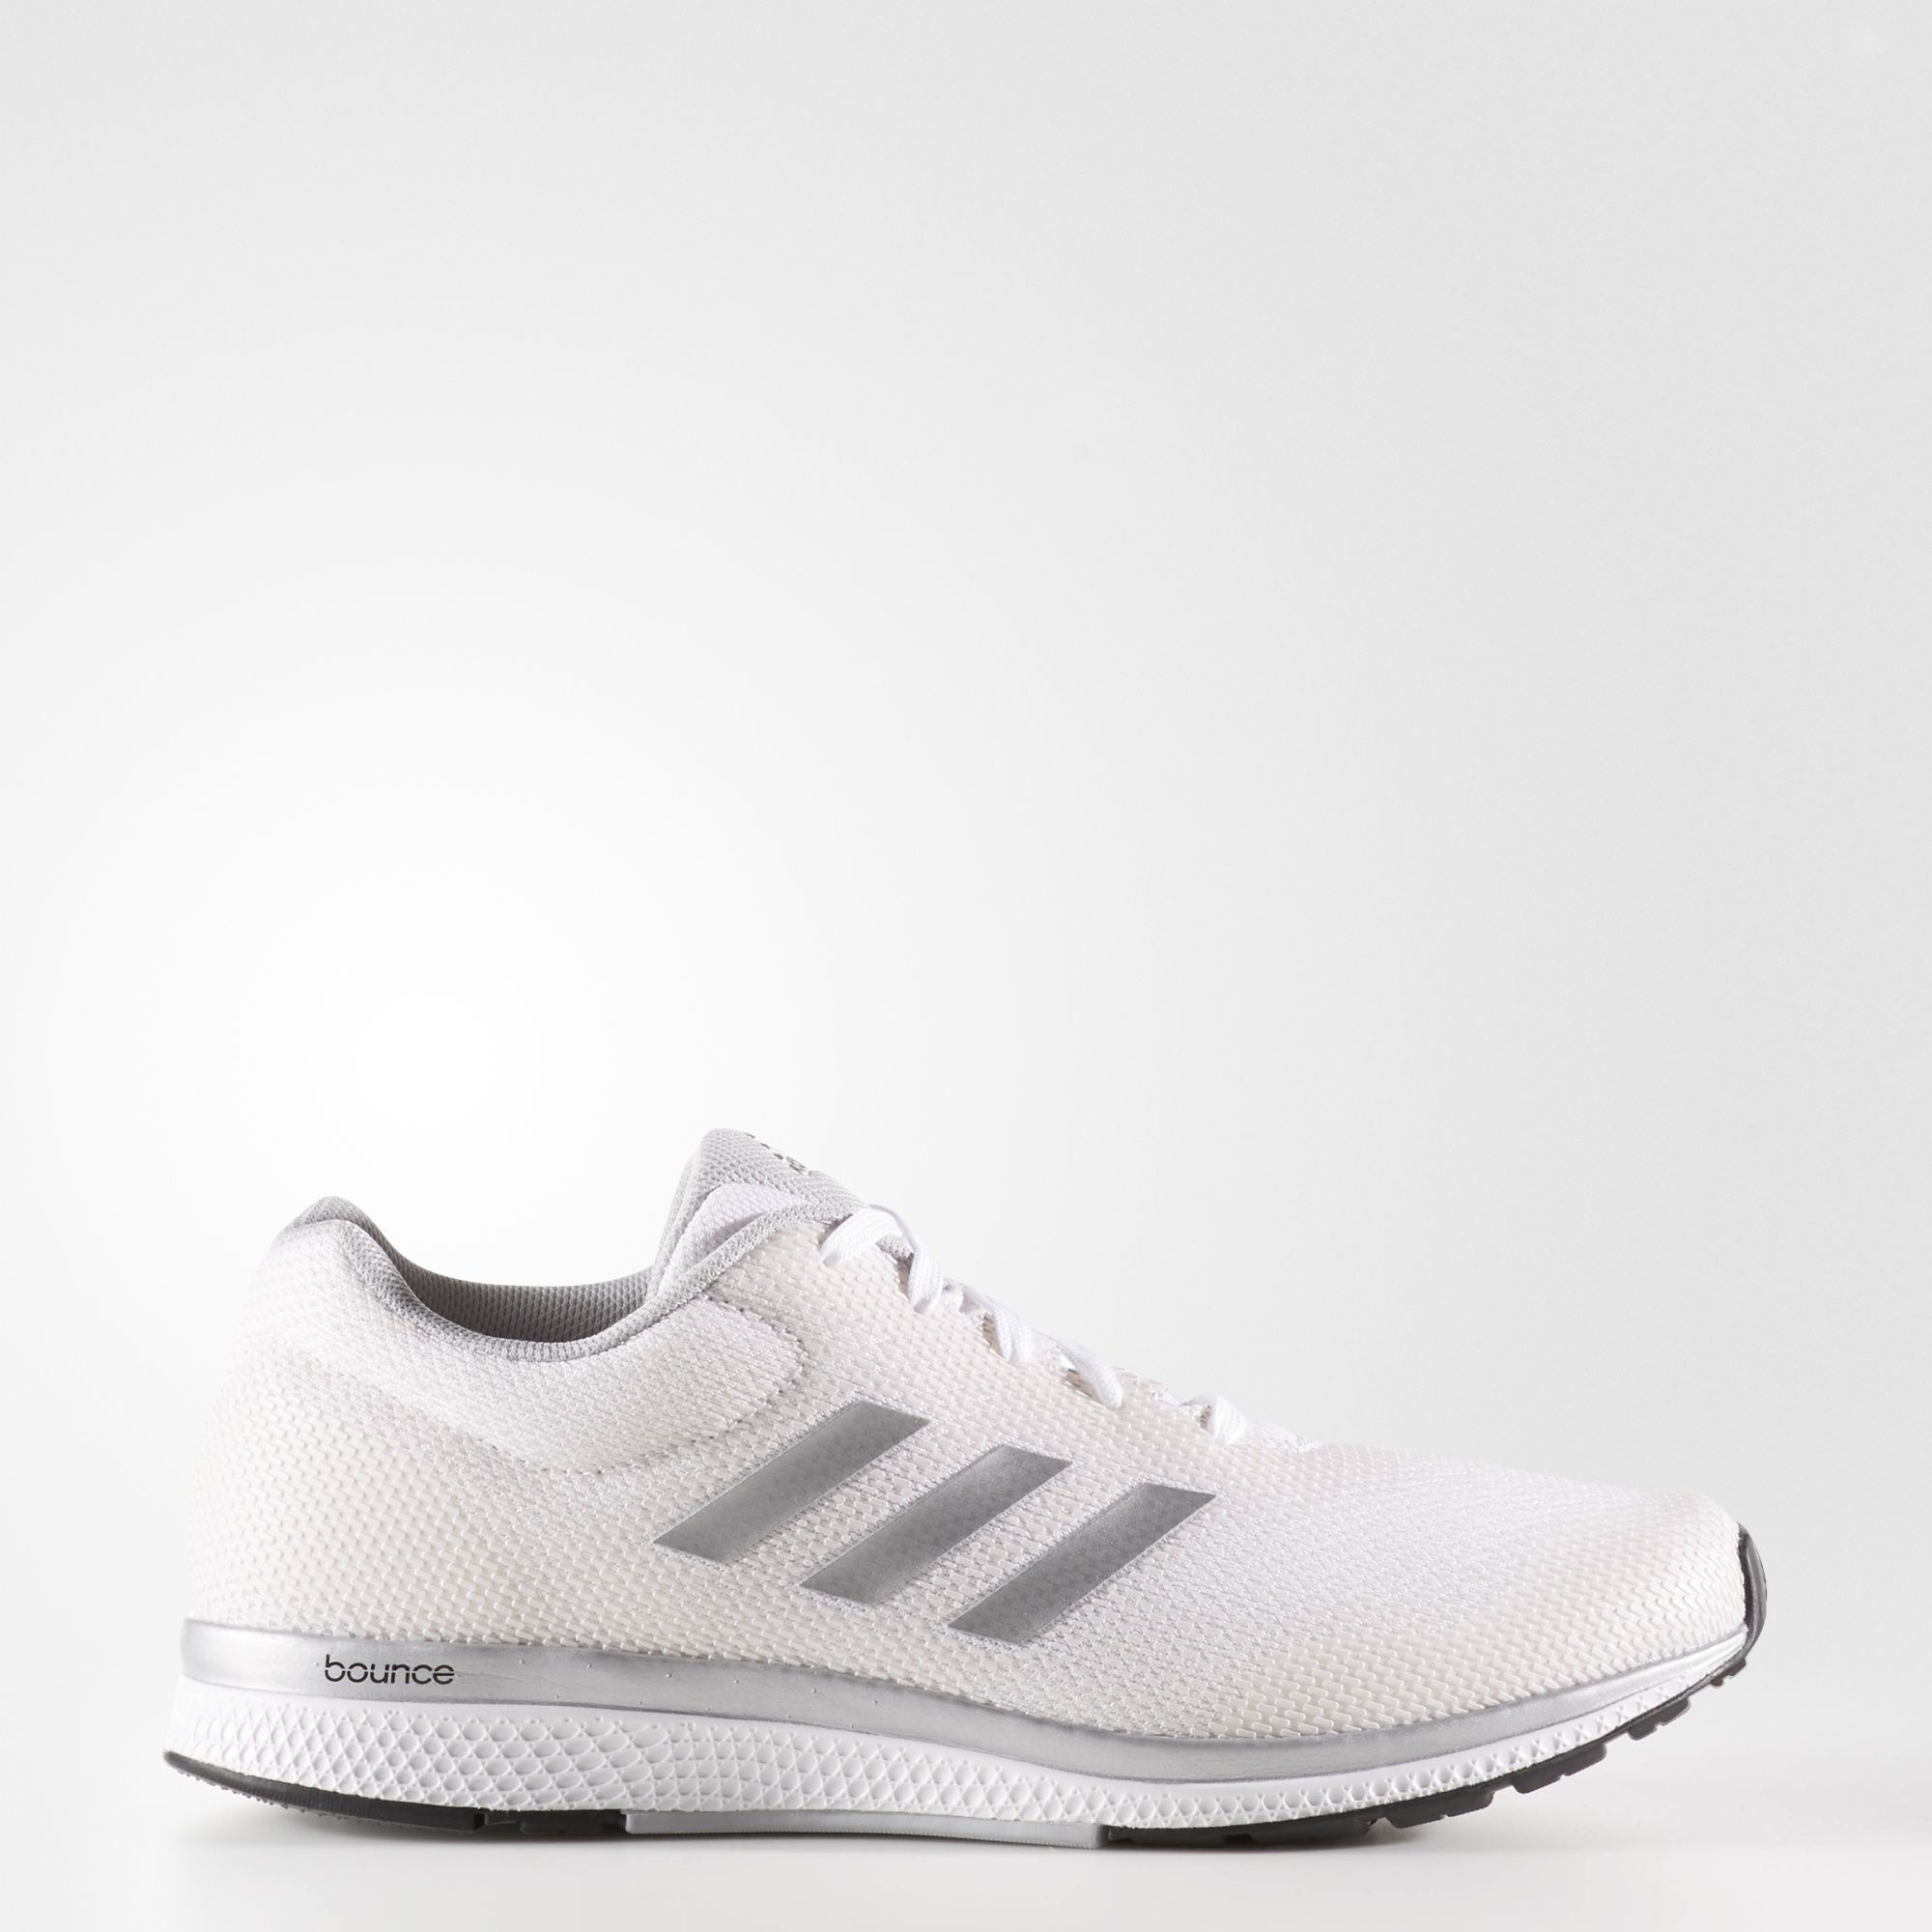 adidas ultra boost running shoe (women) women originals originals adidas white white green adria